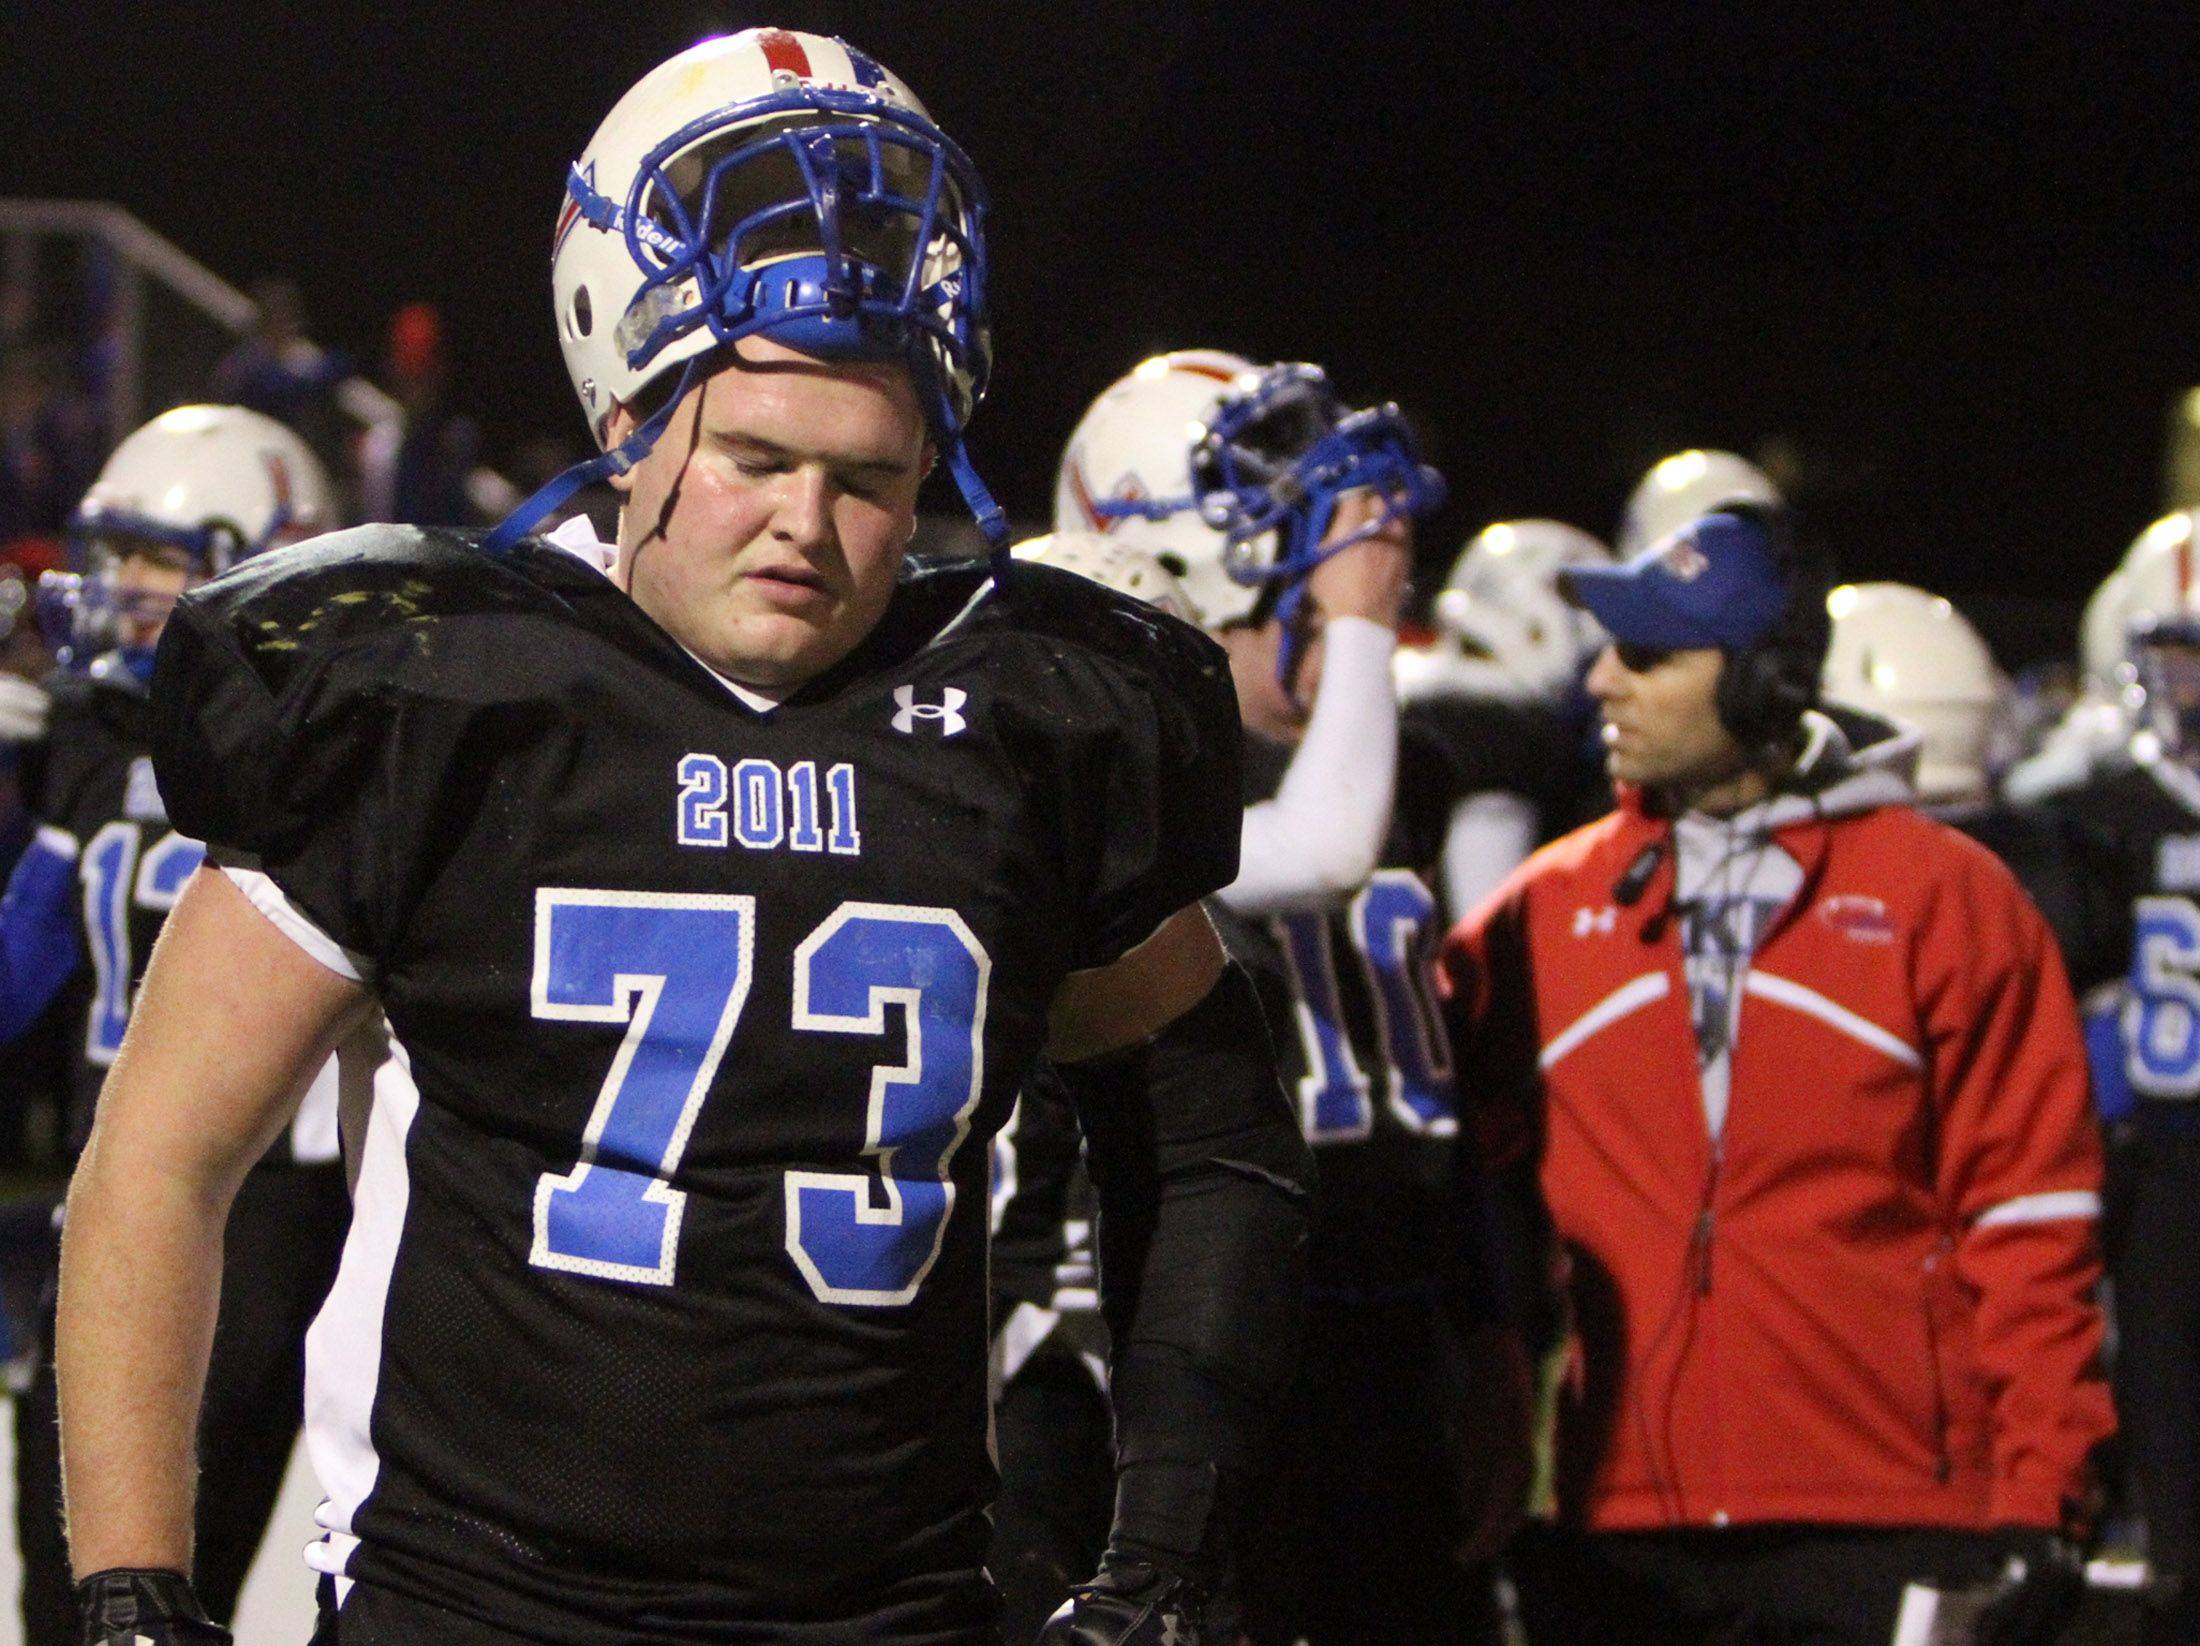 Lakes' offensive lineman Ty Summers walks along the sidelines with seconds left on the clock as Lakes lost 42-0 against Batavia 42-0 at Lakes on Saturday, November 12th.